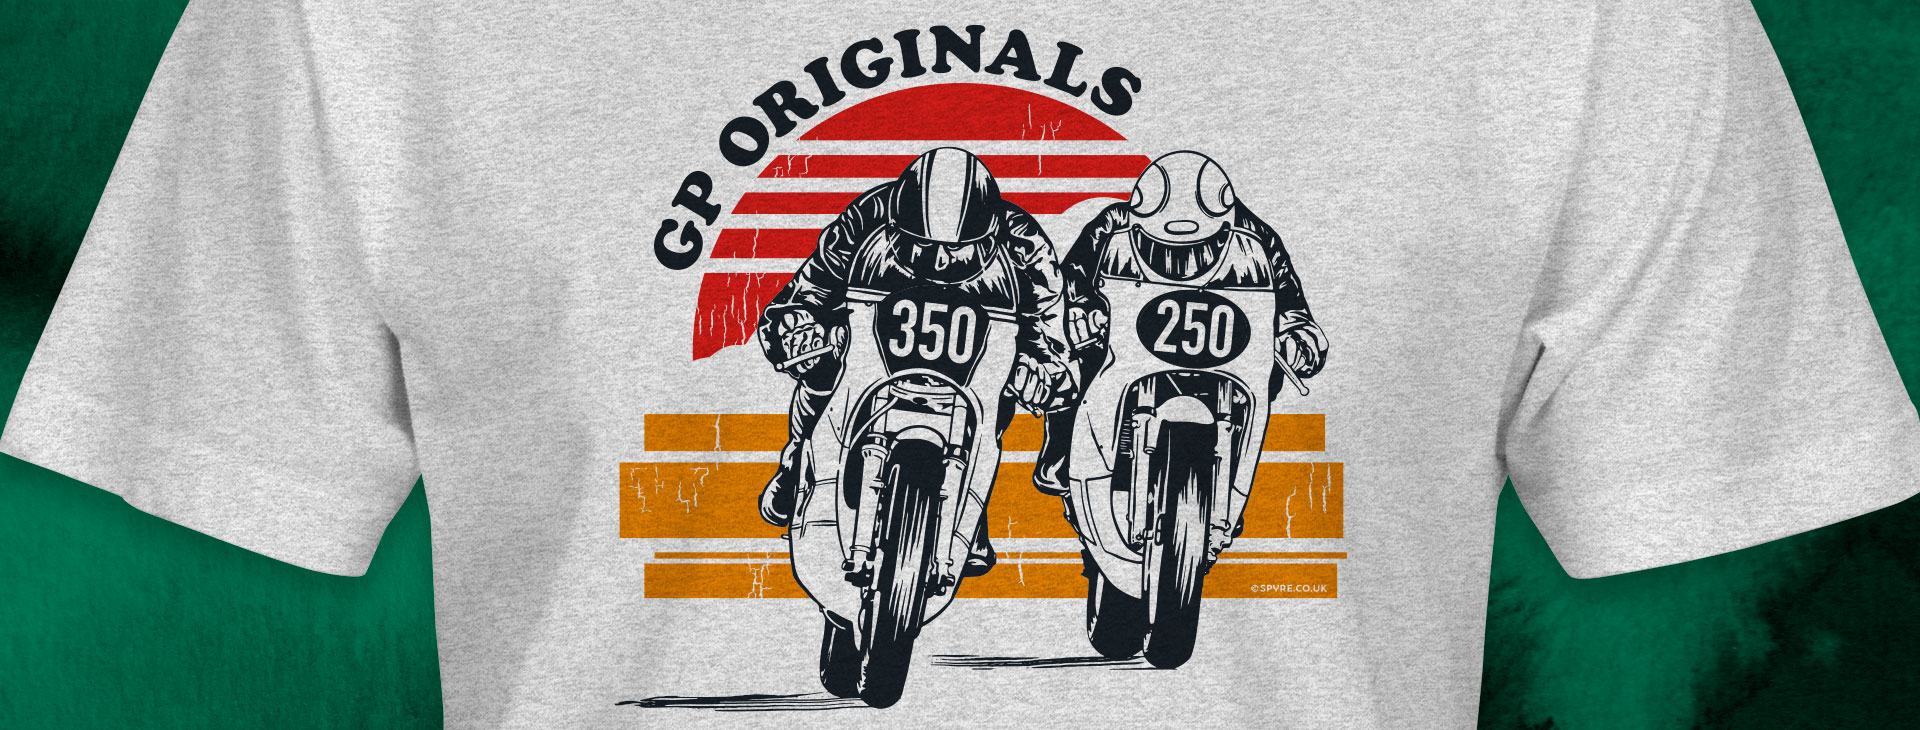 GP Originals t-shirt 2020